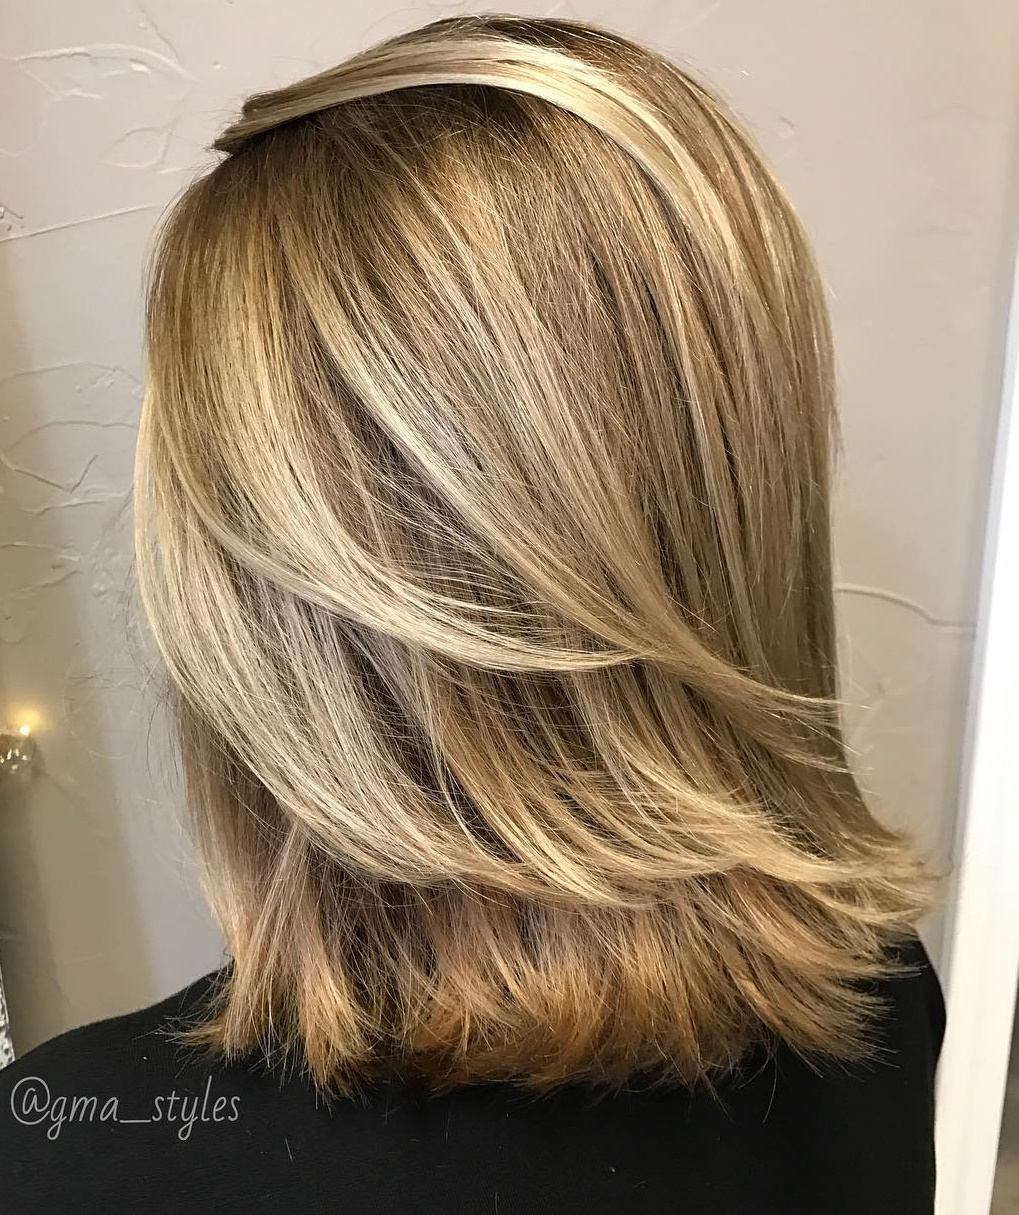 Shoulder Length Cut With Feathered Ends